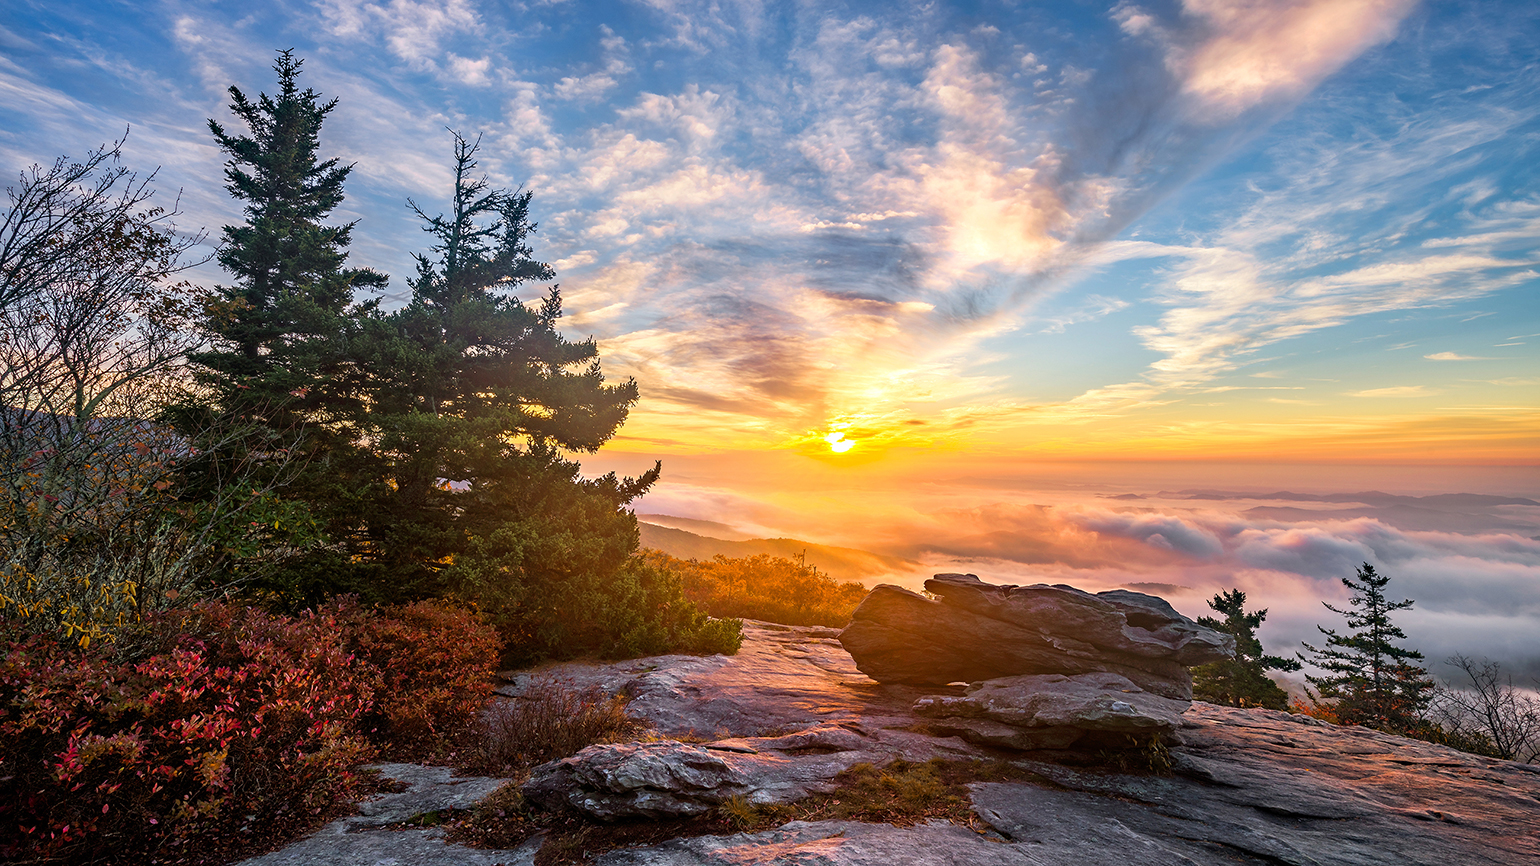 The sun rises over mountains and evergreen trees